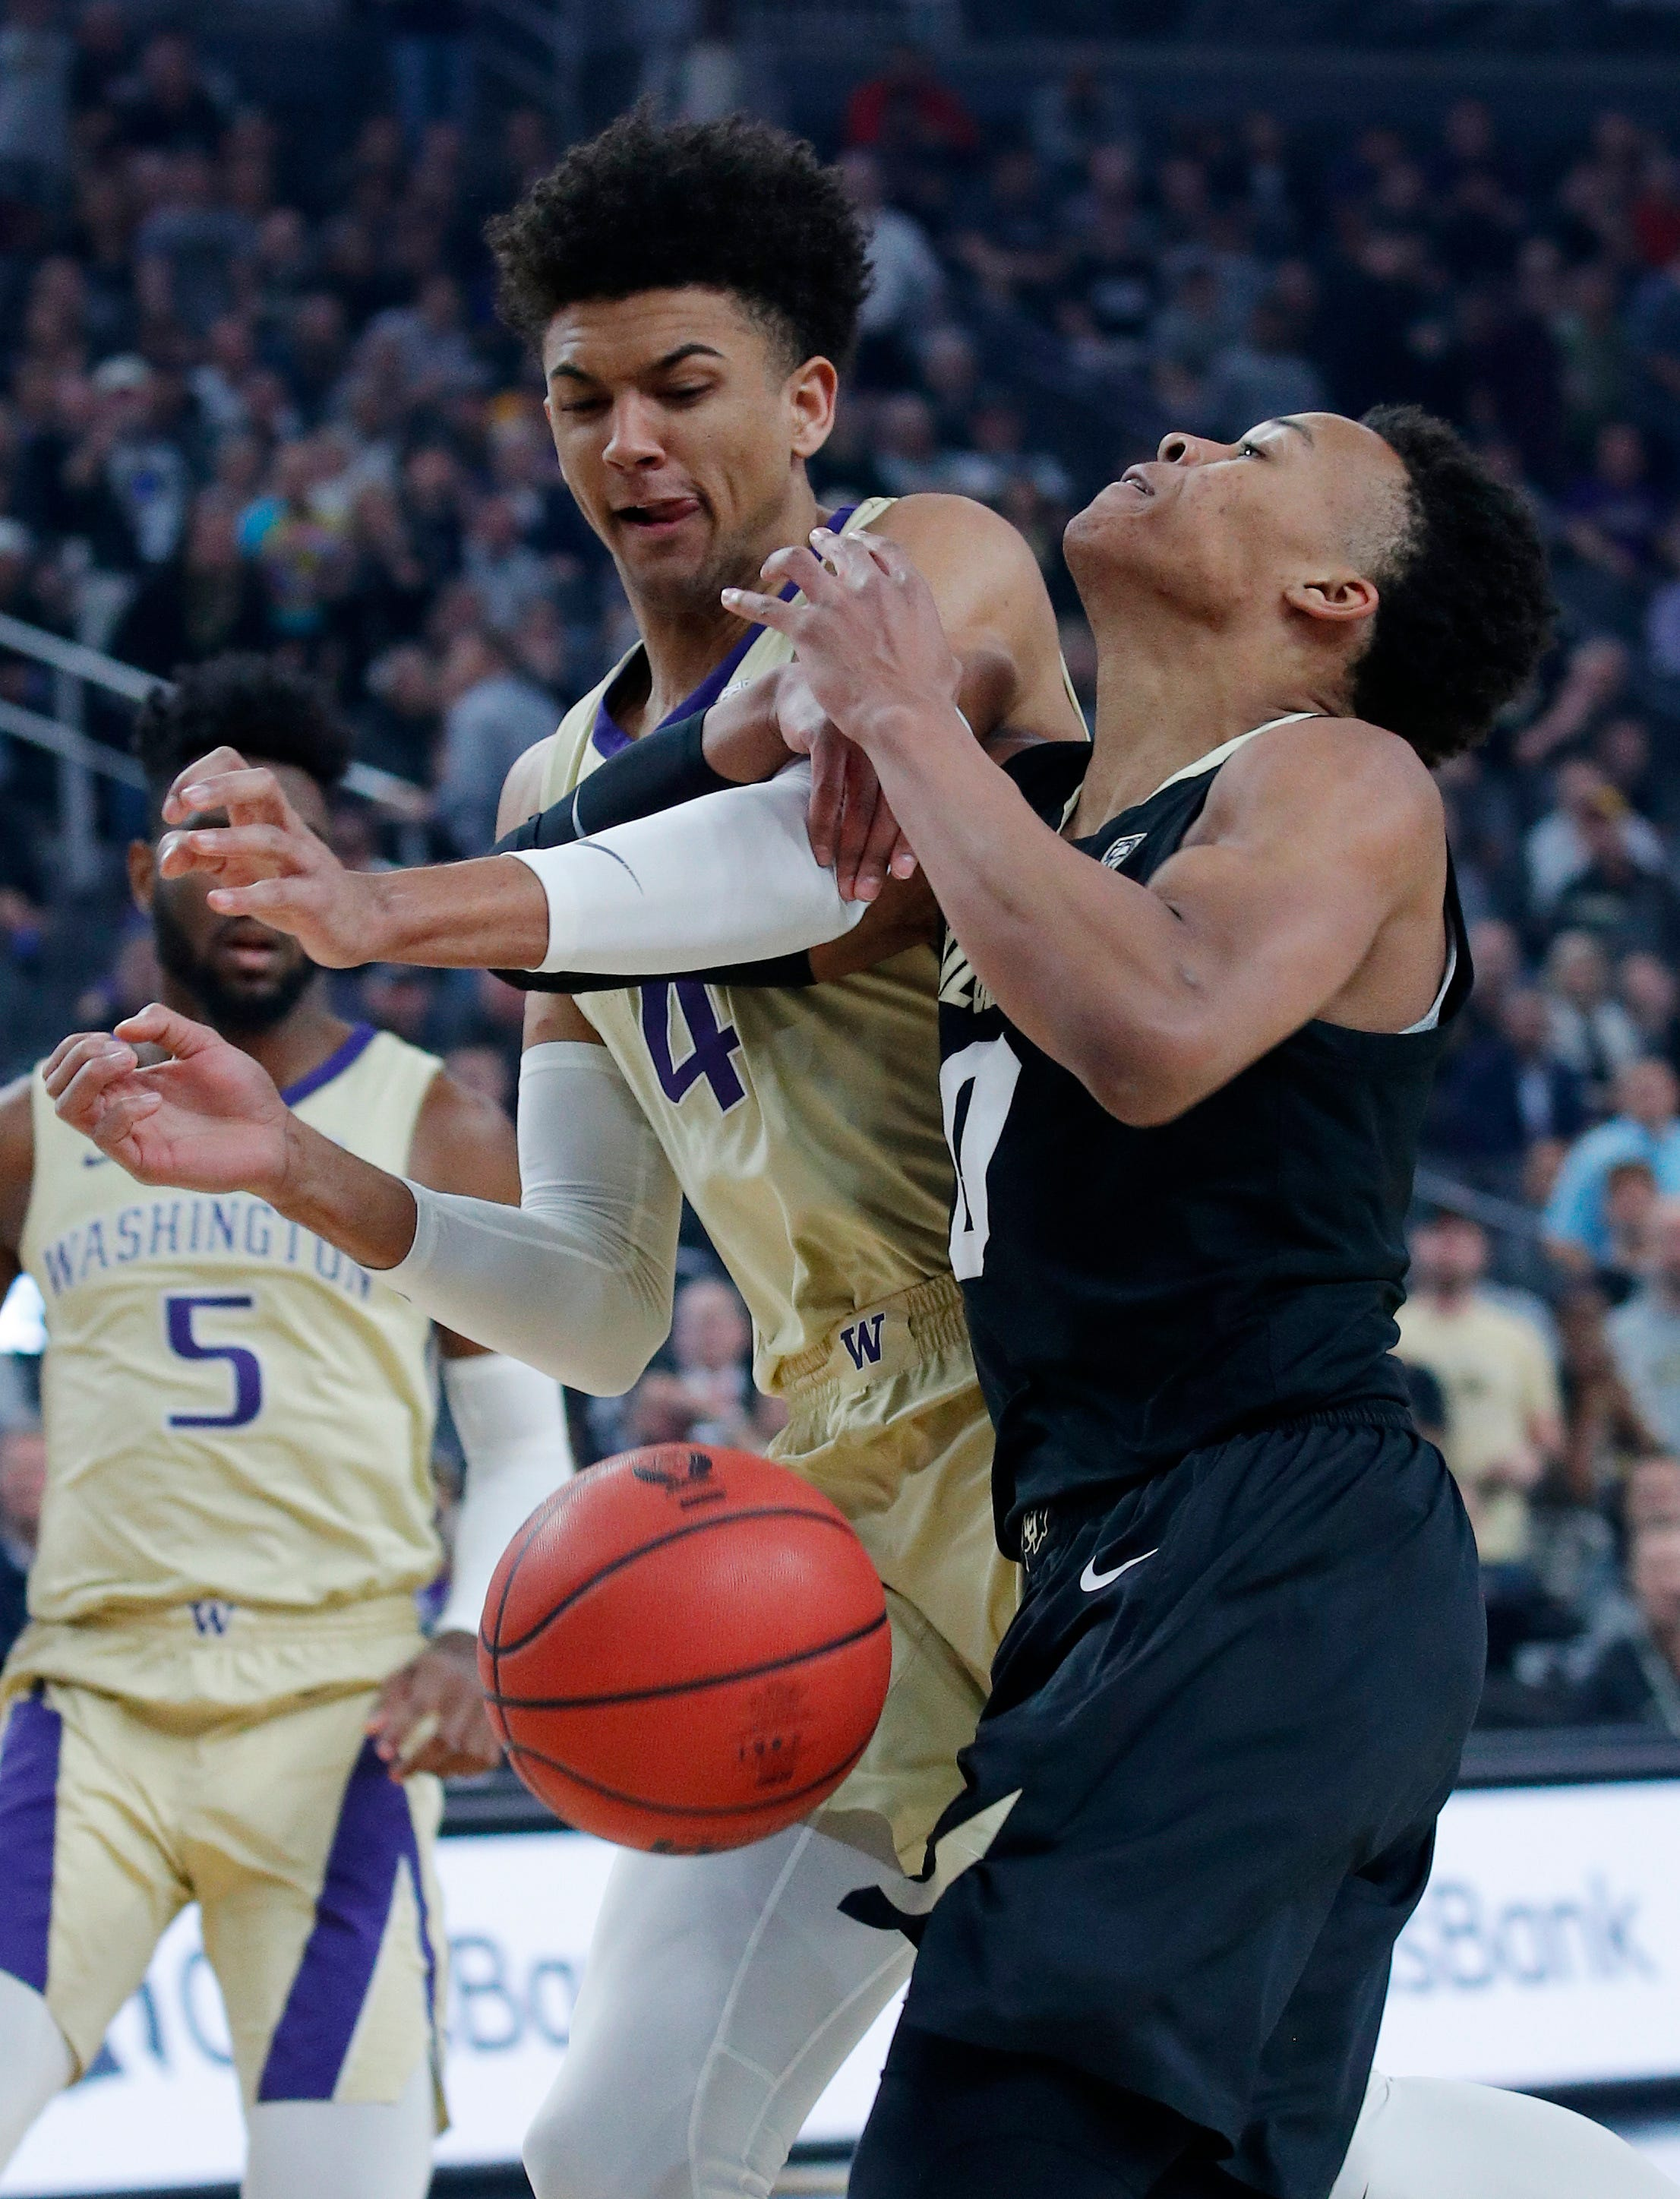 Washington holds off Colorado 66-61 in Pac-12 semifinals